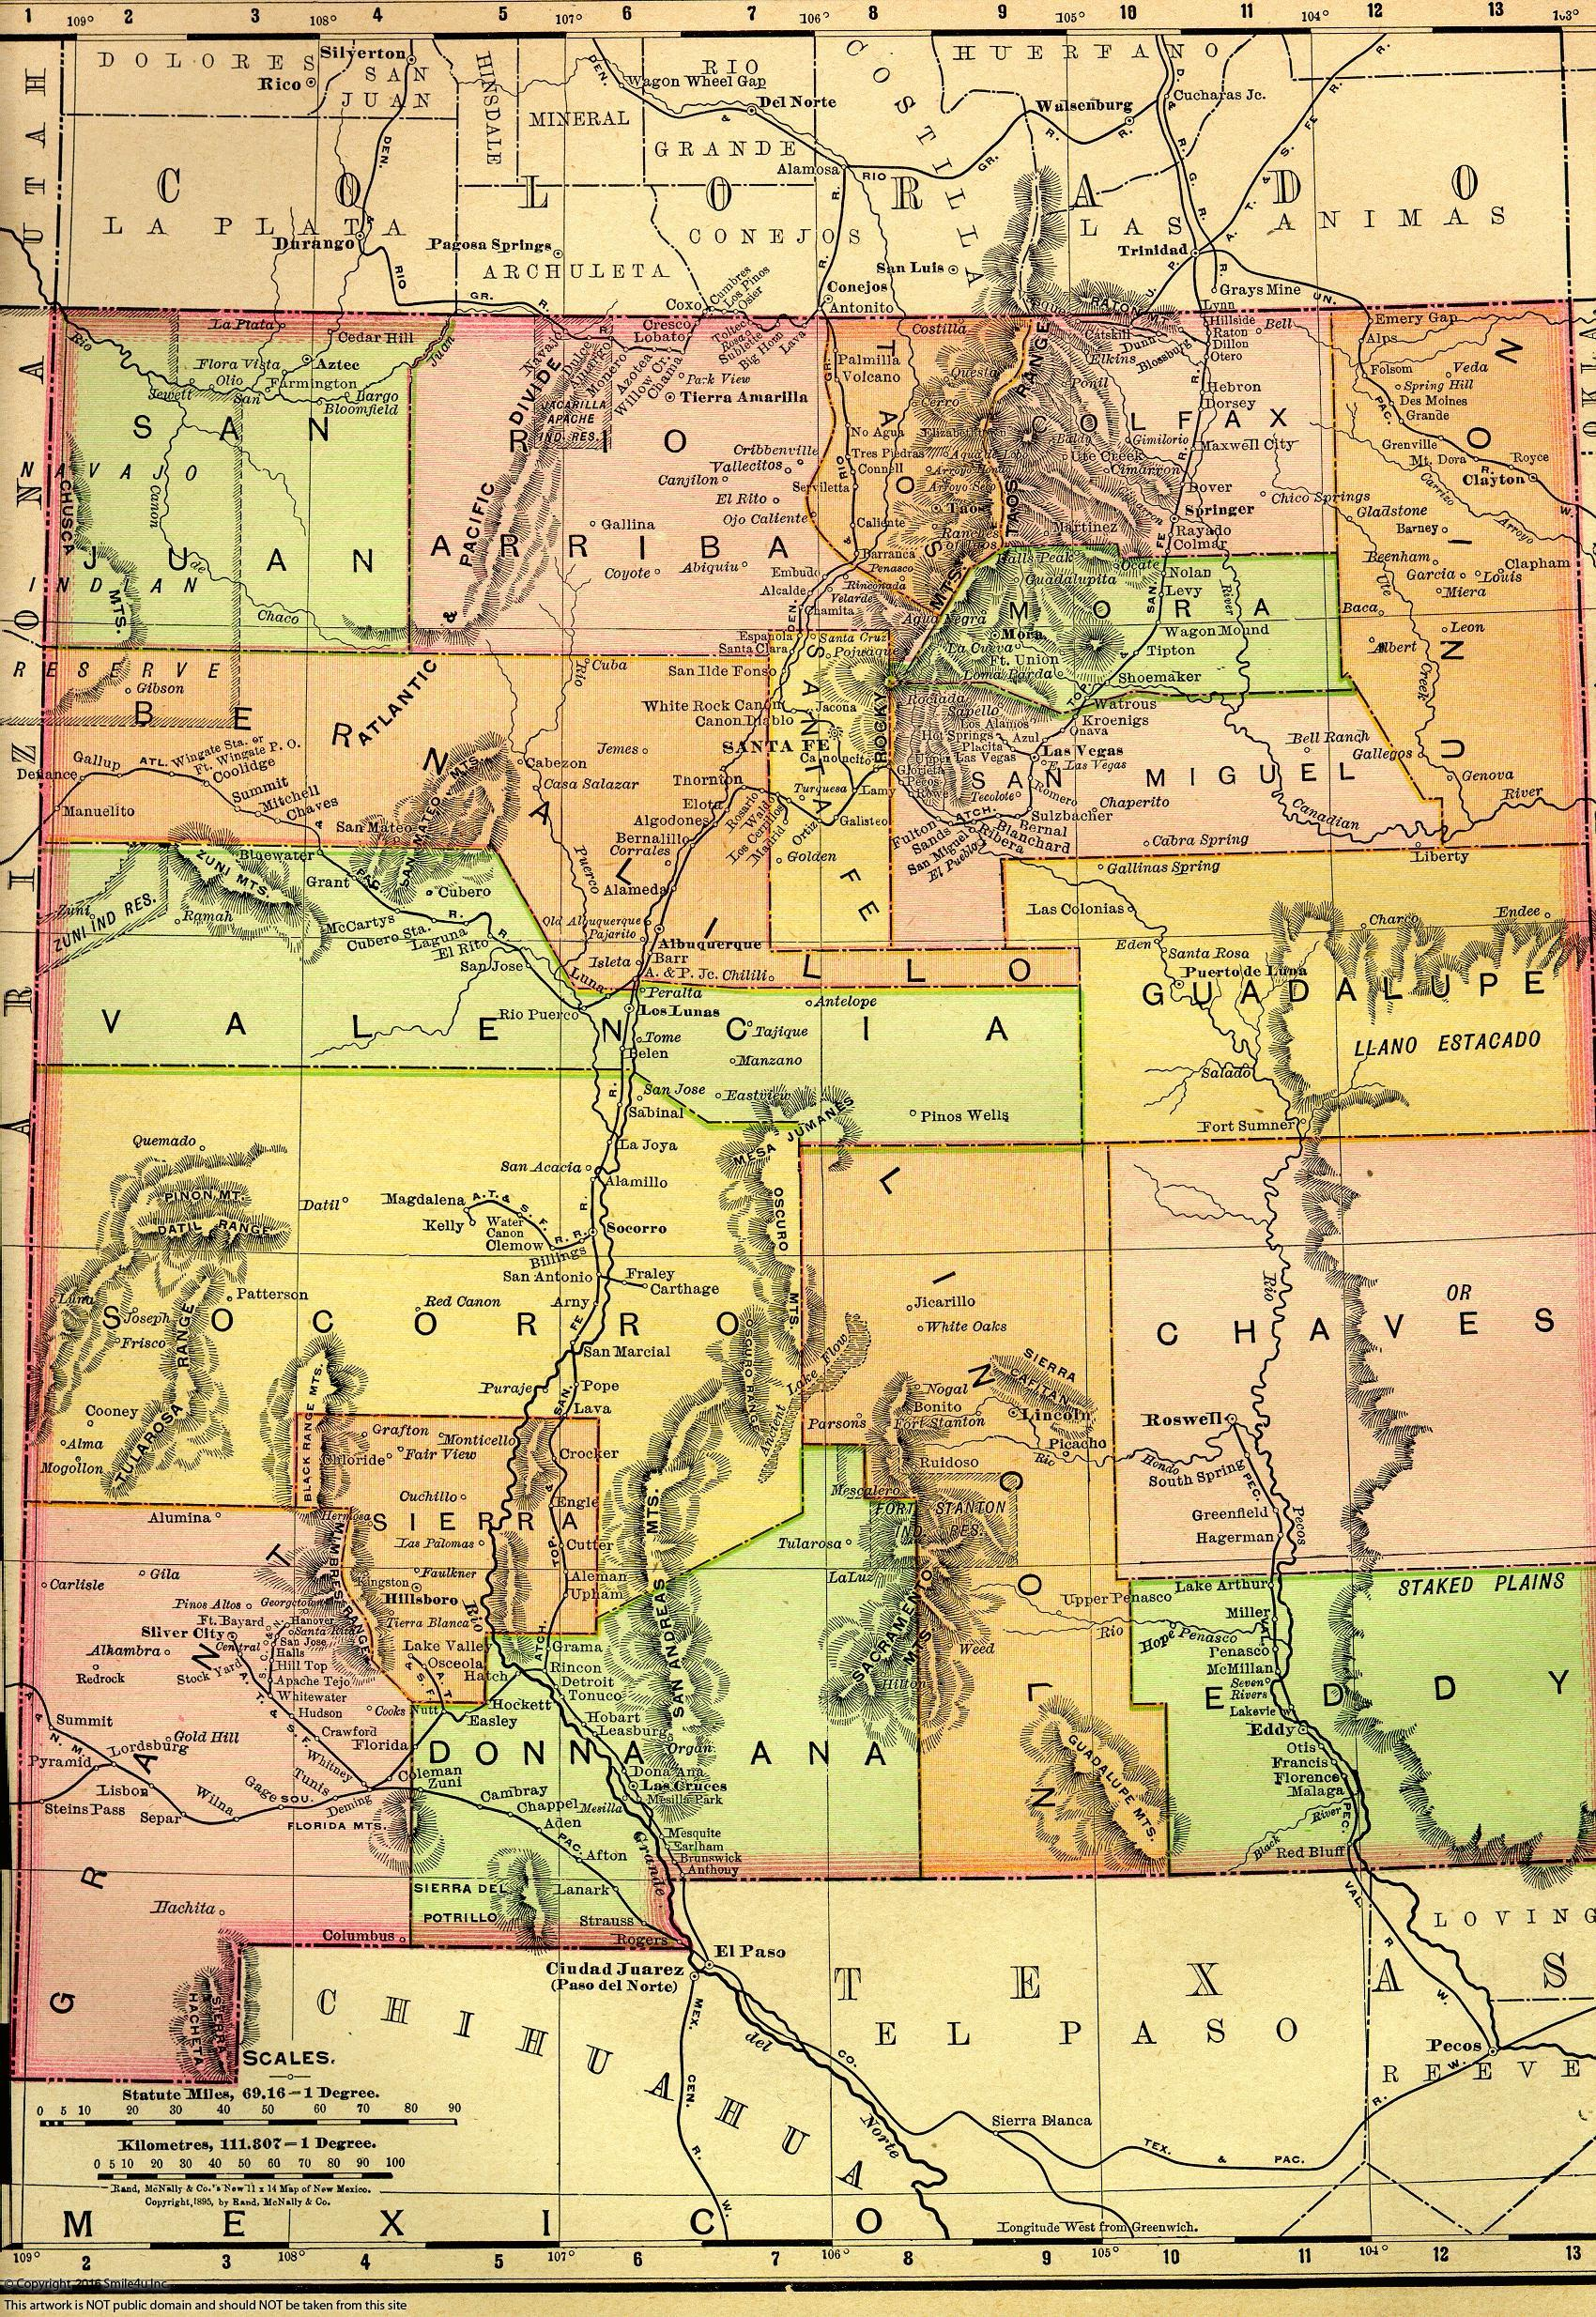 999846_watermarked_New Mexico State Map in 1895.jpg